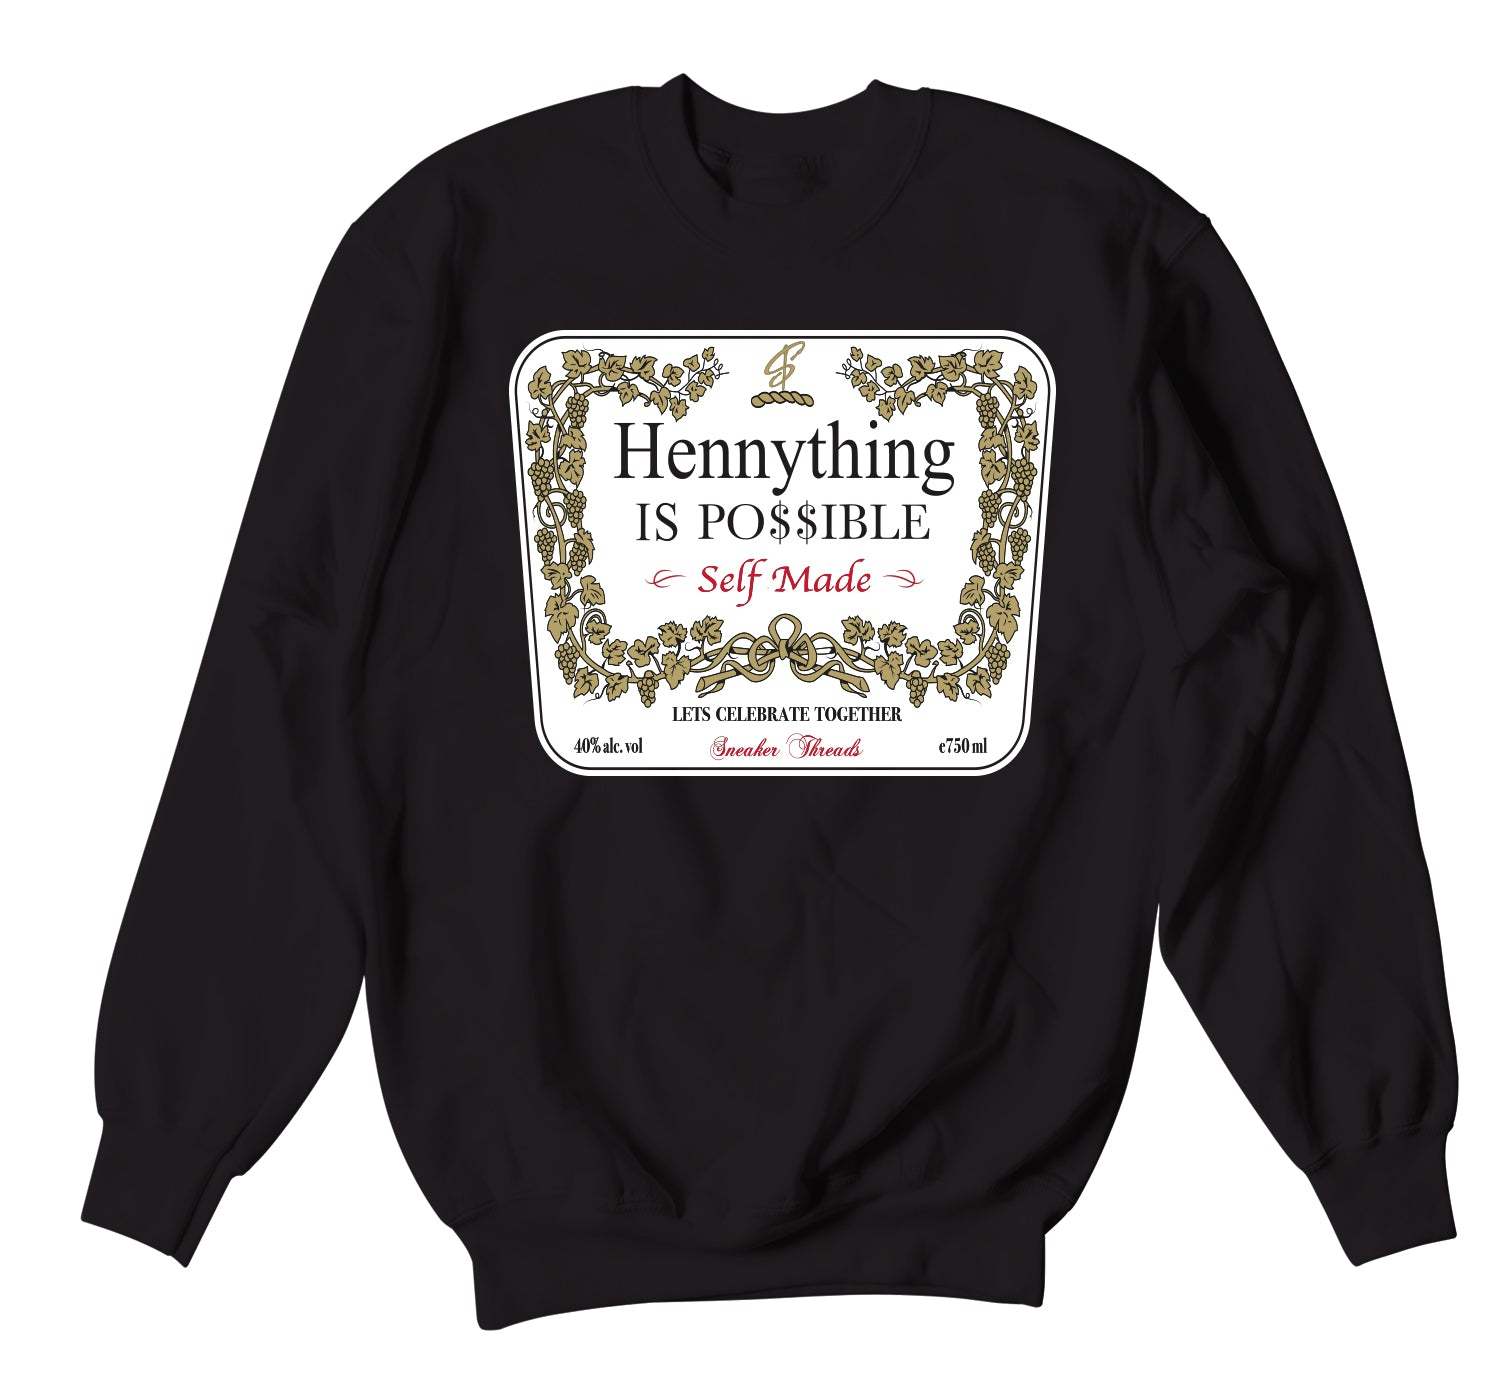 Jordan 11 Bred Hennything Sweater